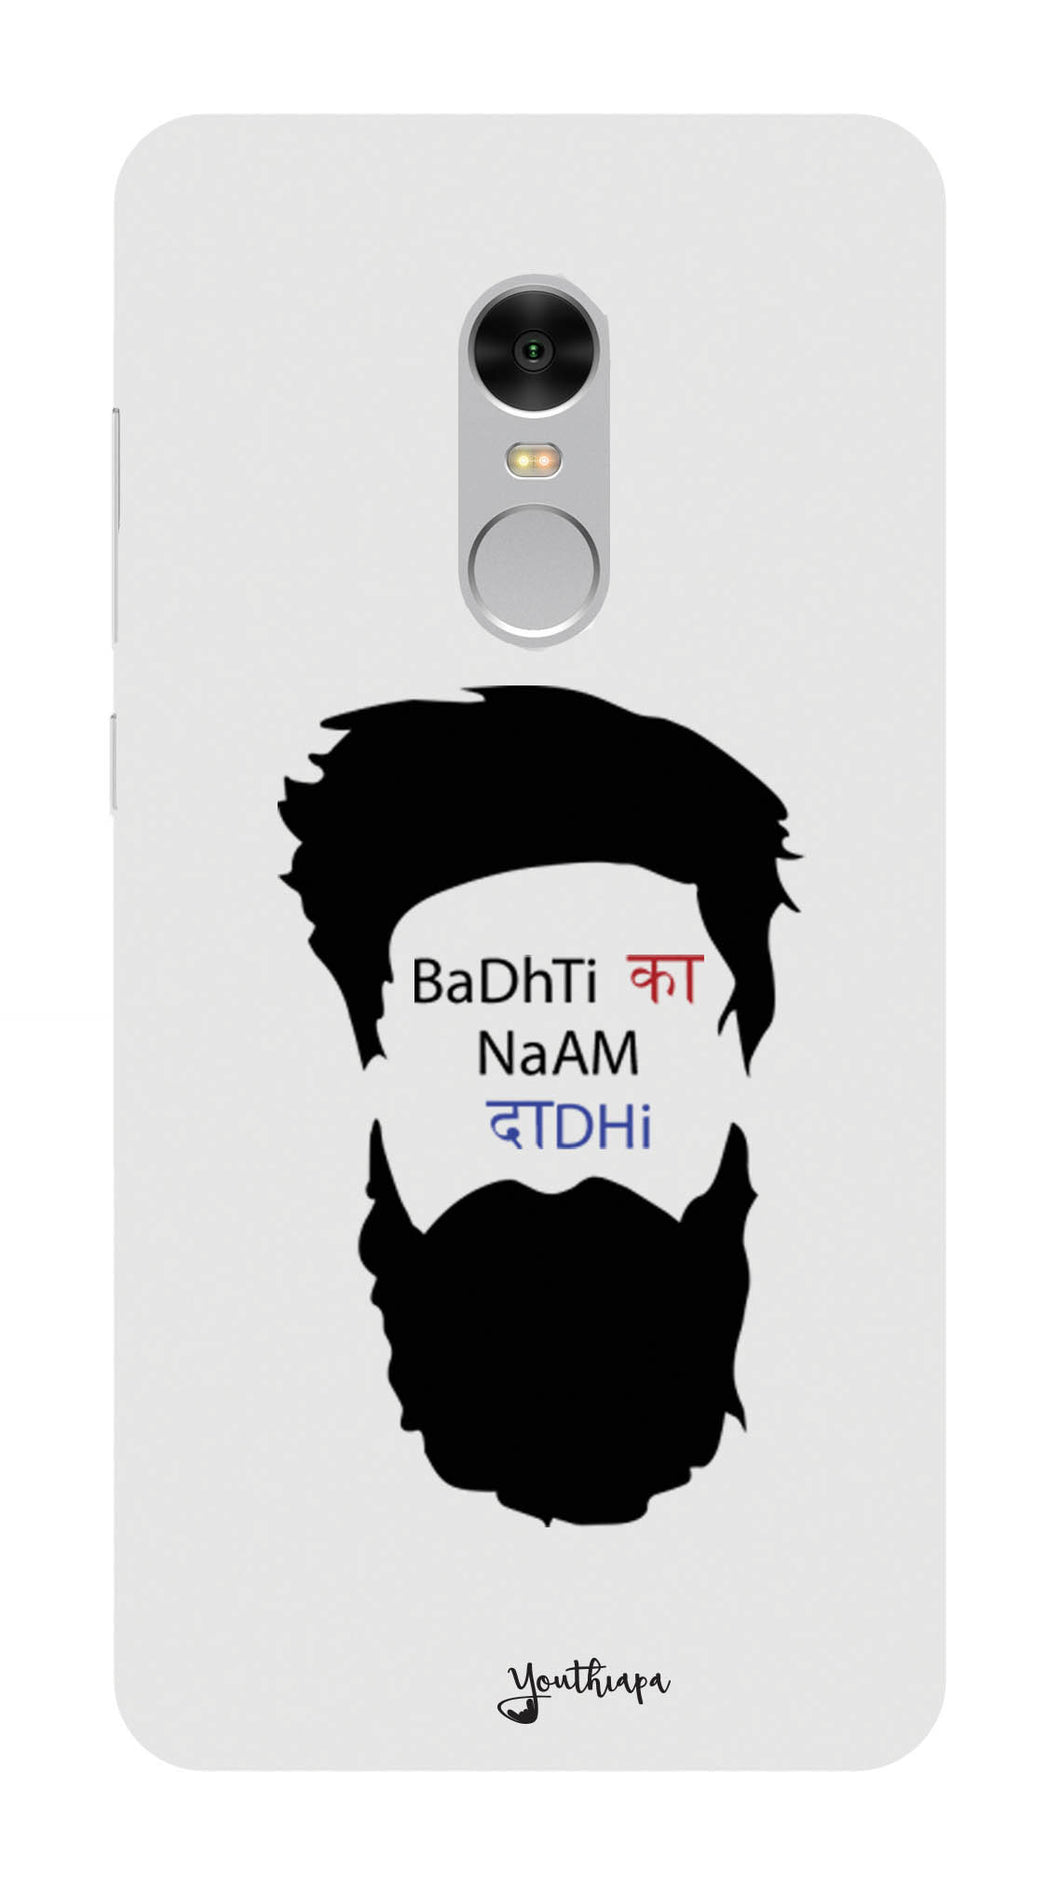 The Beard Edition WHITE for XIAOMI REDMI NOTE 4